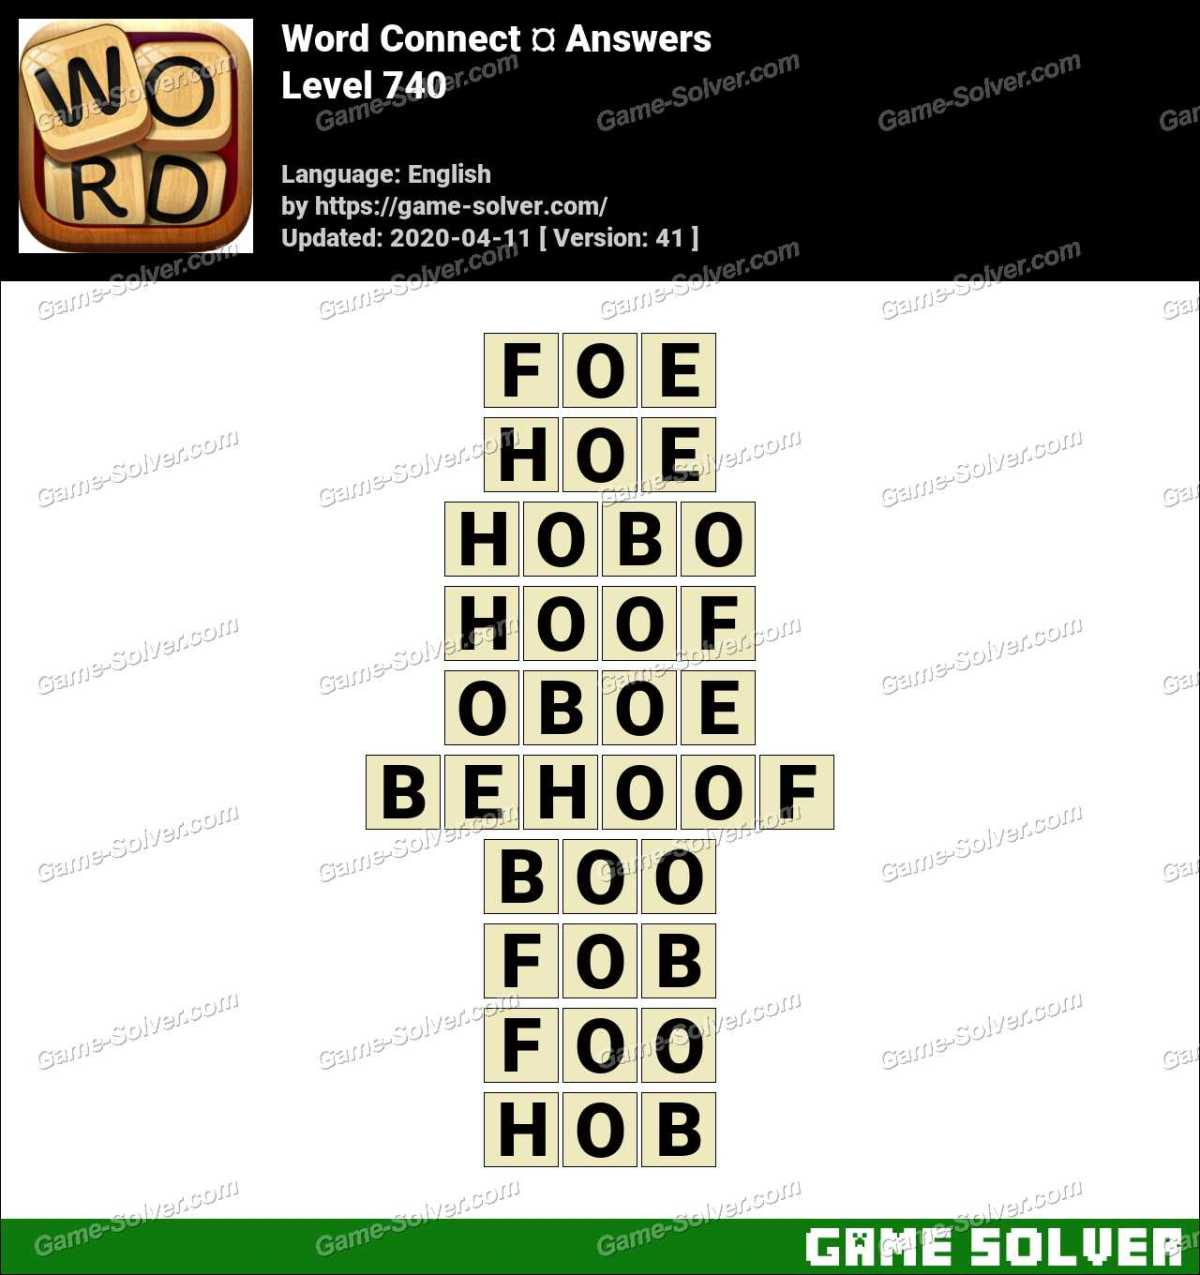 Word Connect Level 740 Answers